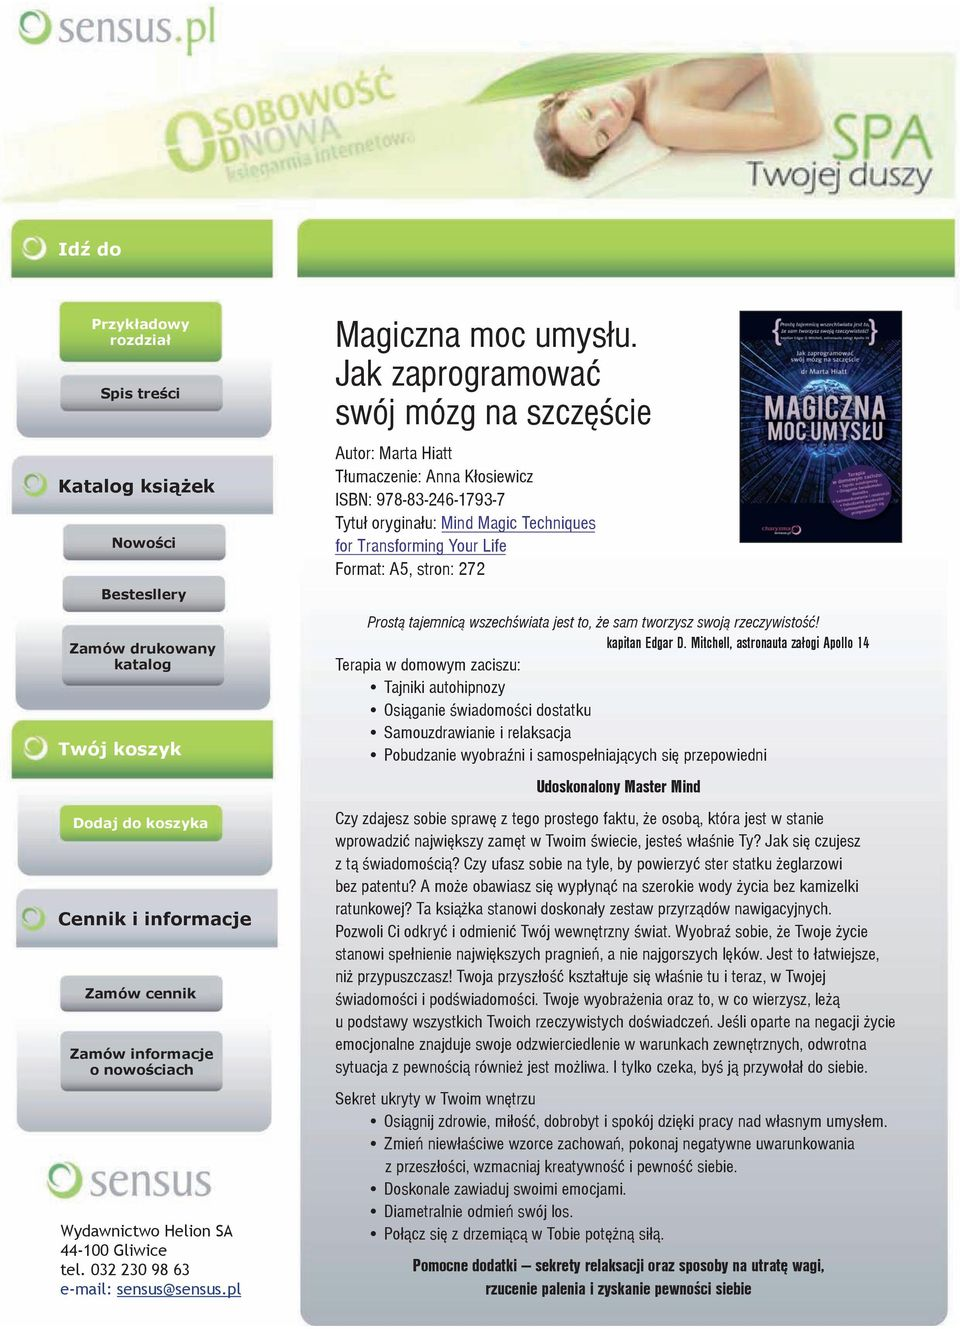 Jak zaprogramować swój mózg na szczęœcie Autor: Marta Hiatt Tłumaczenie: Anna Kłosiewicz ISBN: 978-83-246-1793-7 Tytuł oryginału: Mind Magic Techniques for Transforming Your Life Format: A5, stron: